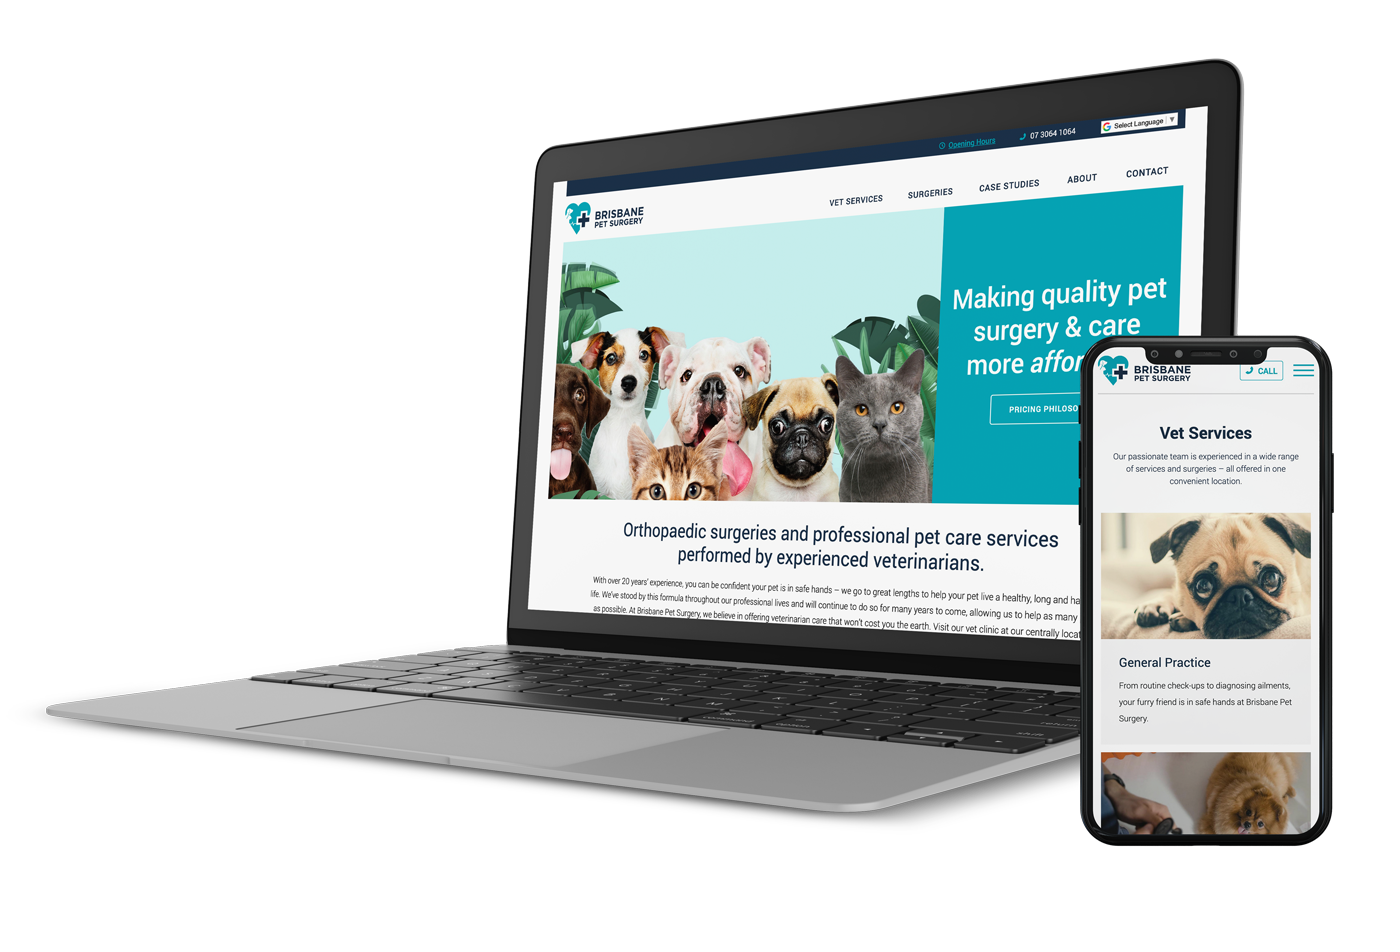 Zeemo created the BPS website to suit a modern professional surgical practice